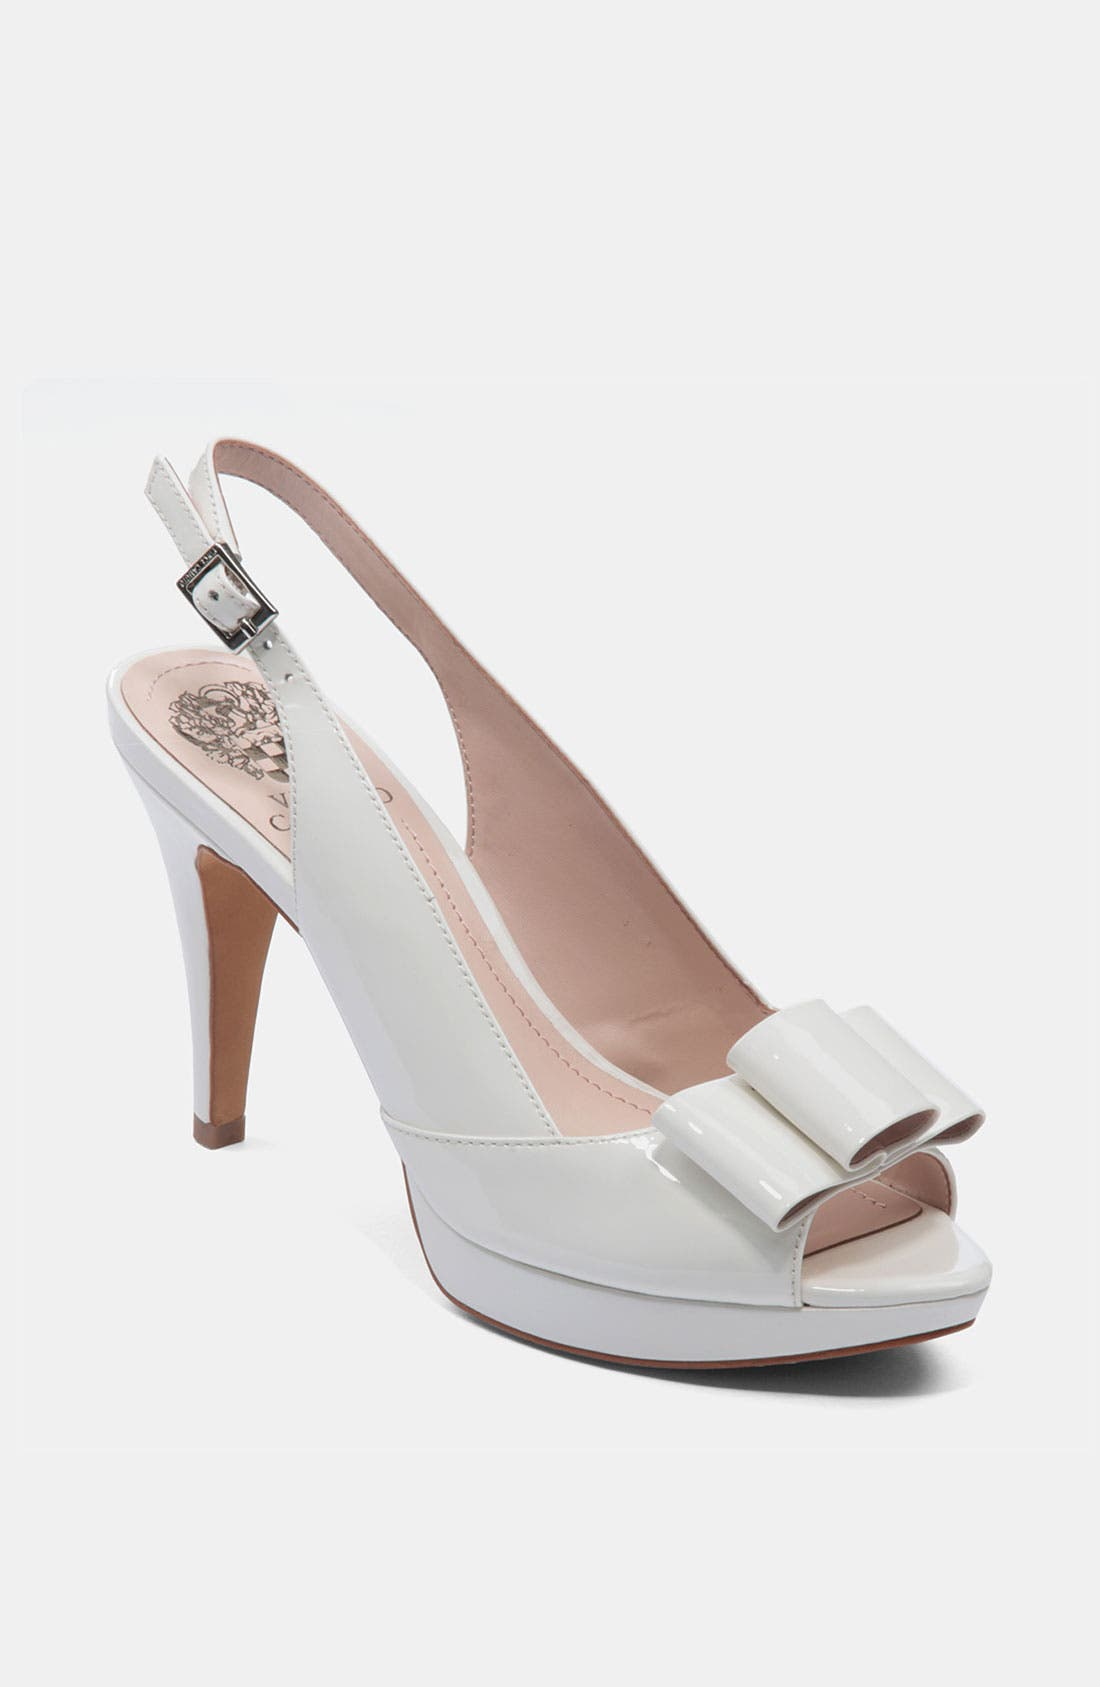 Main Image - Vince Camuto 'Ava' Pump